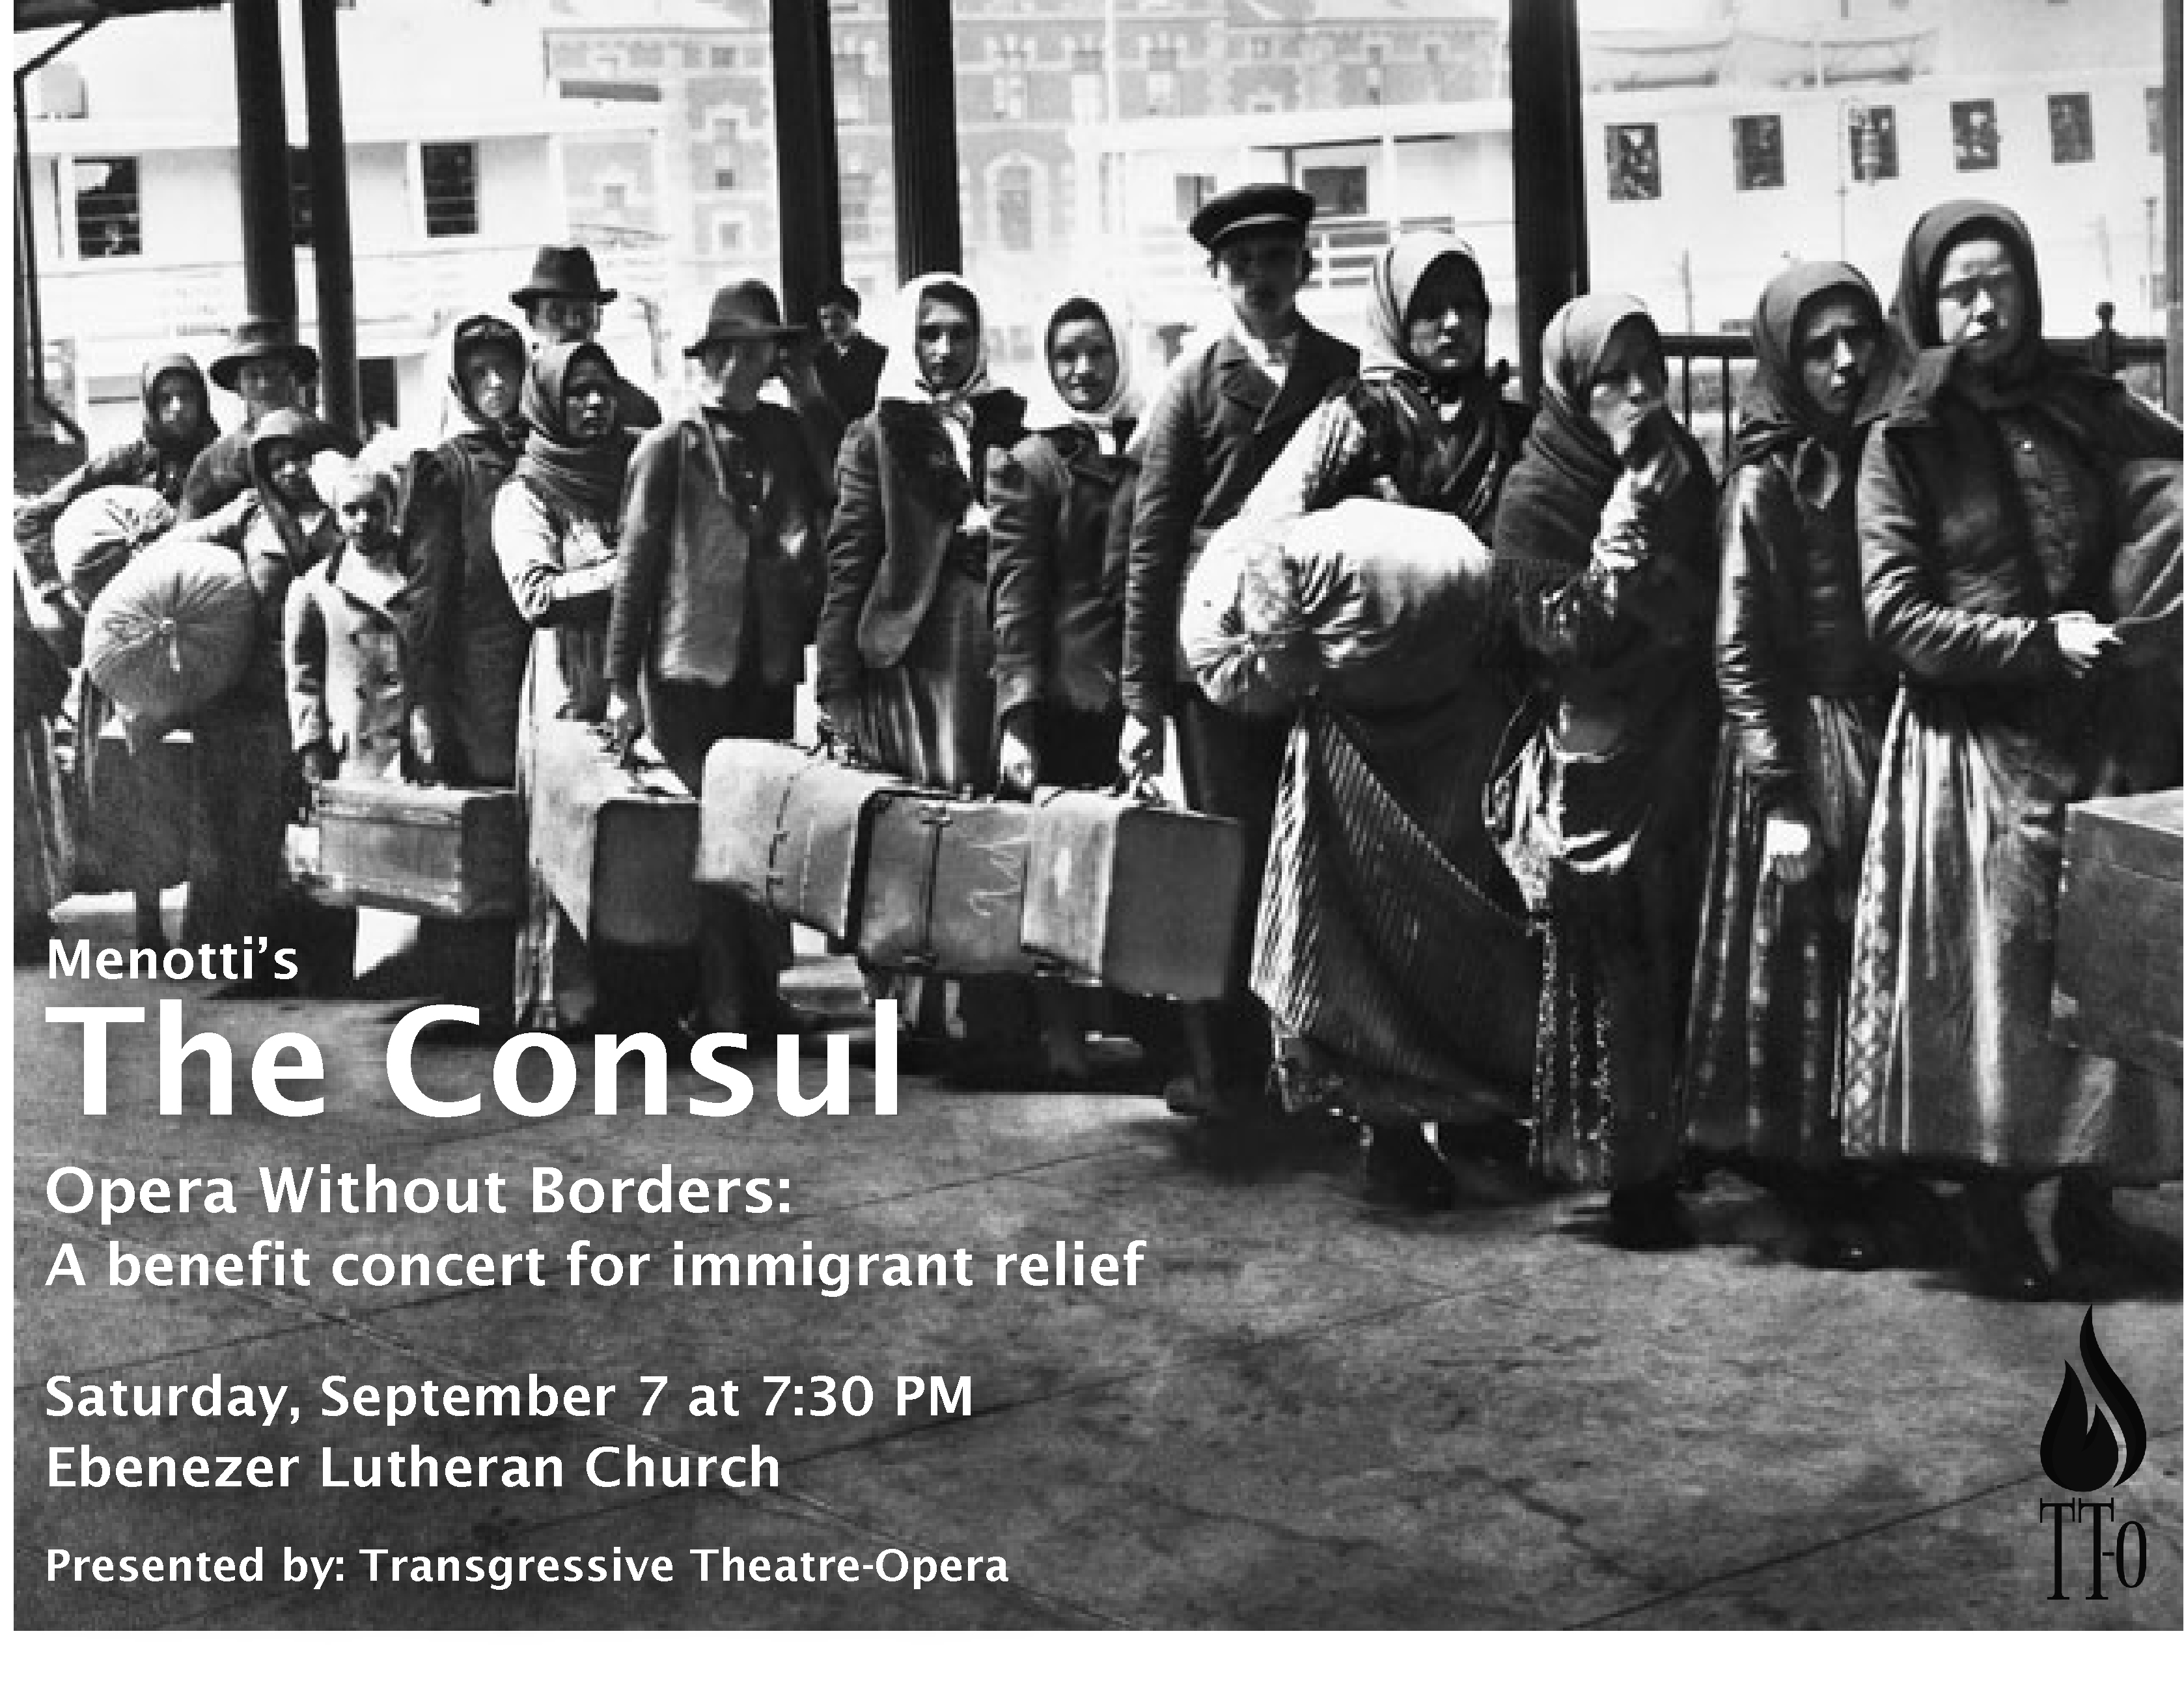 Menotti's The Consul: A benefit concert for immigrant relief